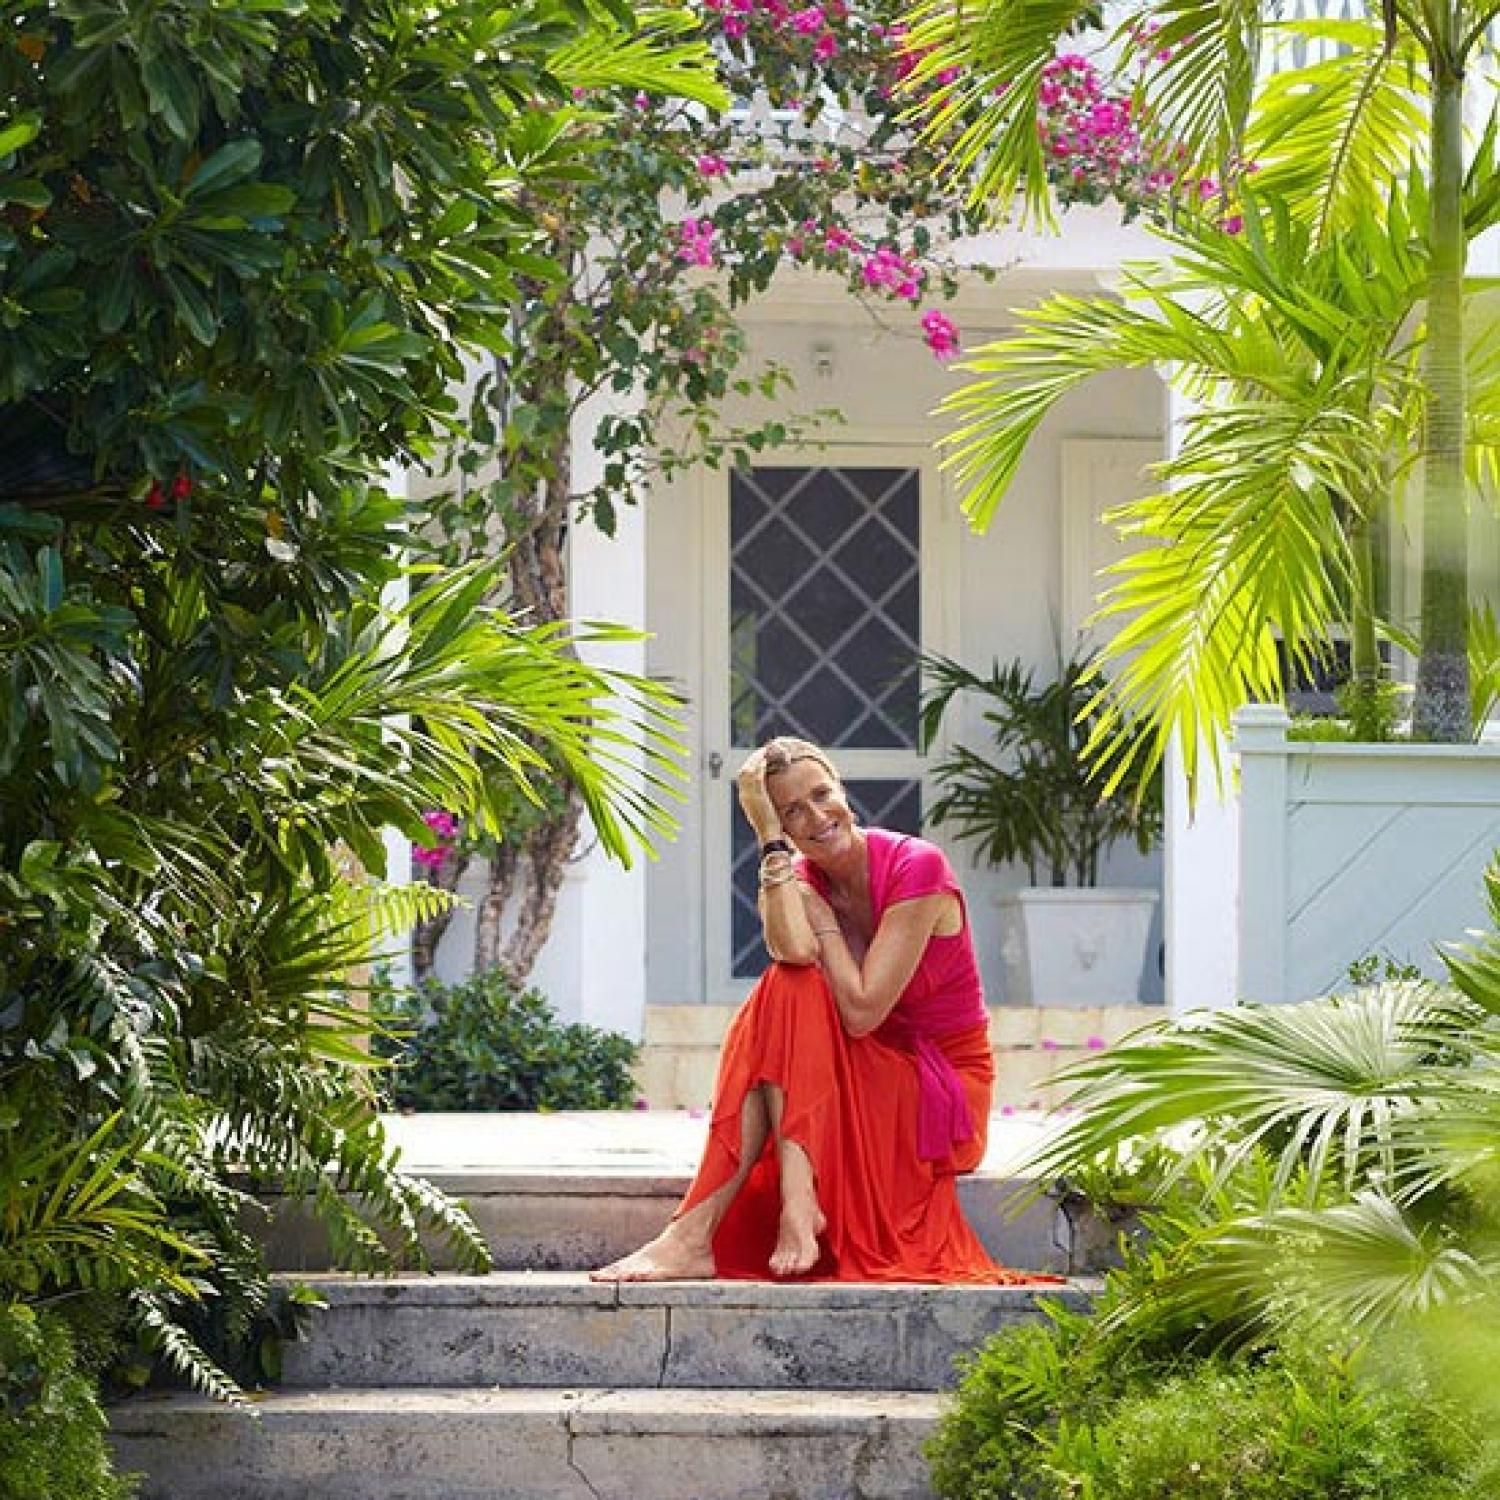 Home Garden Design Ideas India: Model, Designer India Hicks' Home In The Bahamas